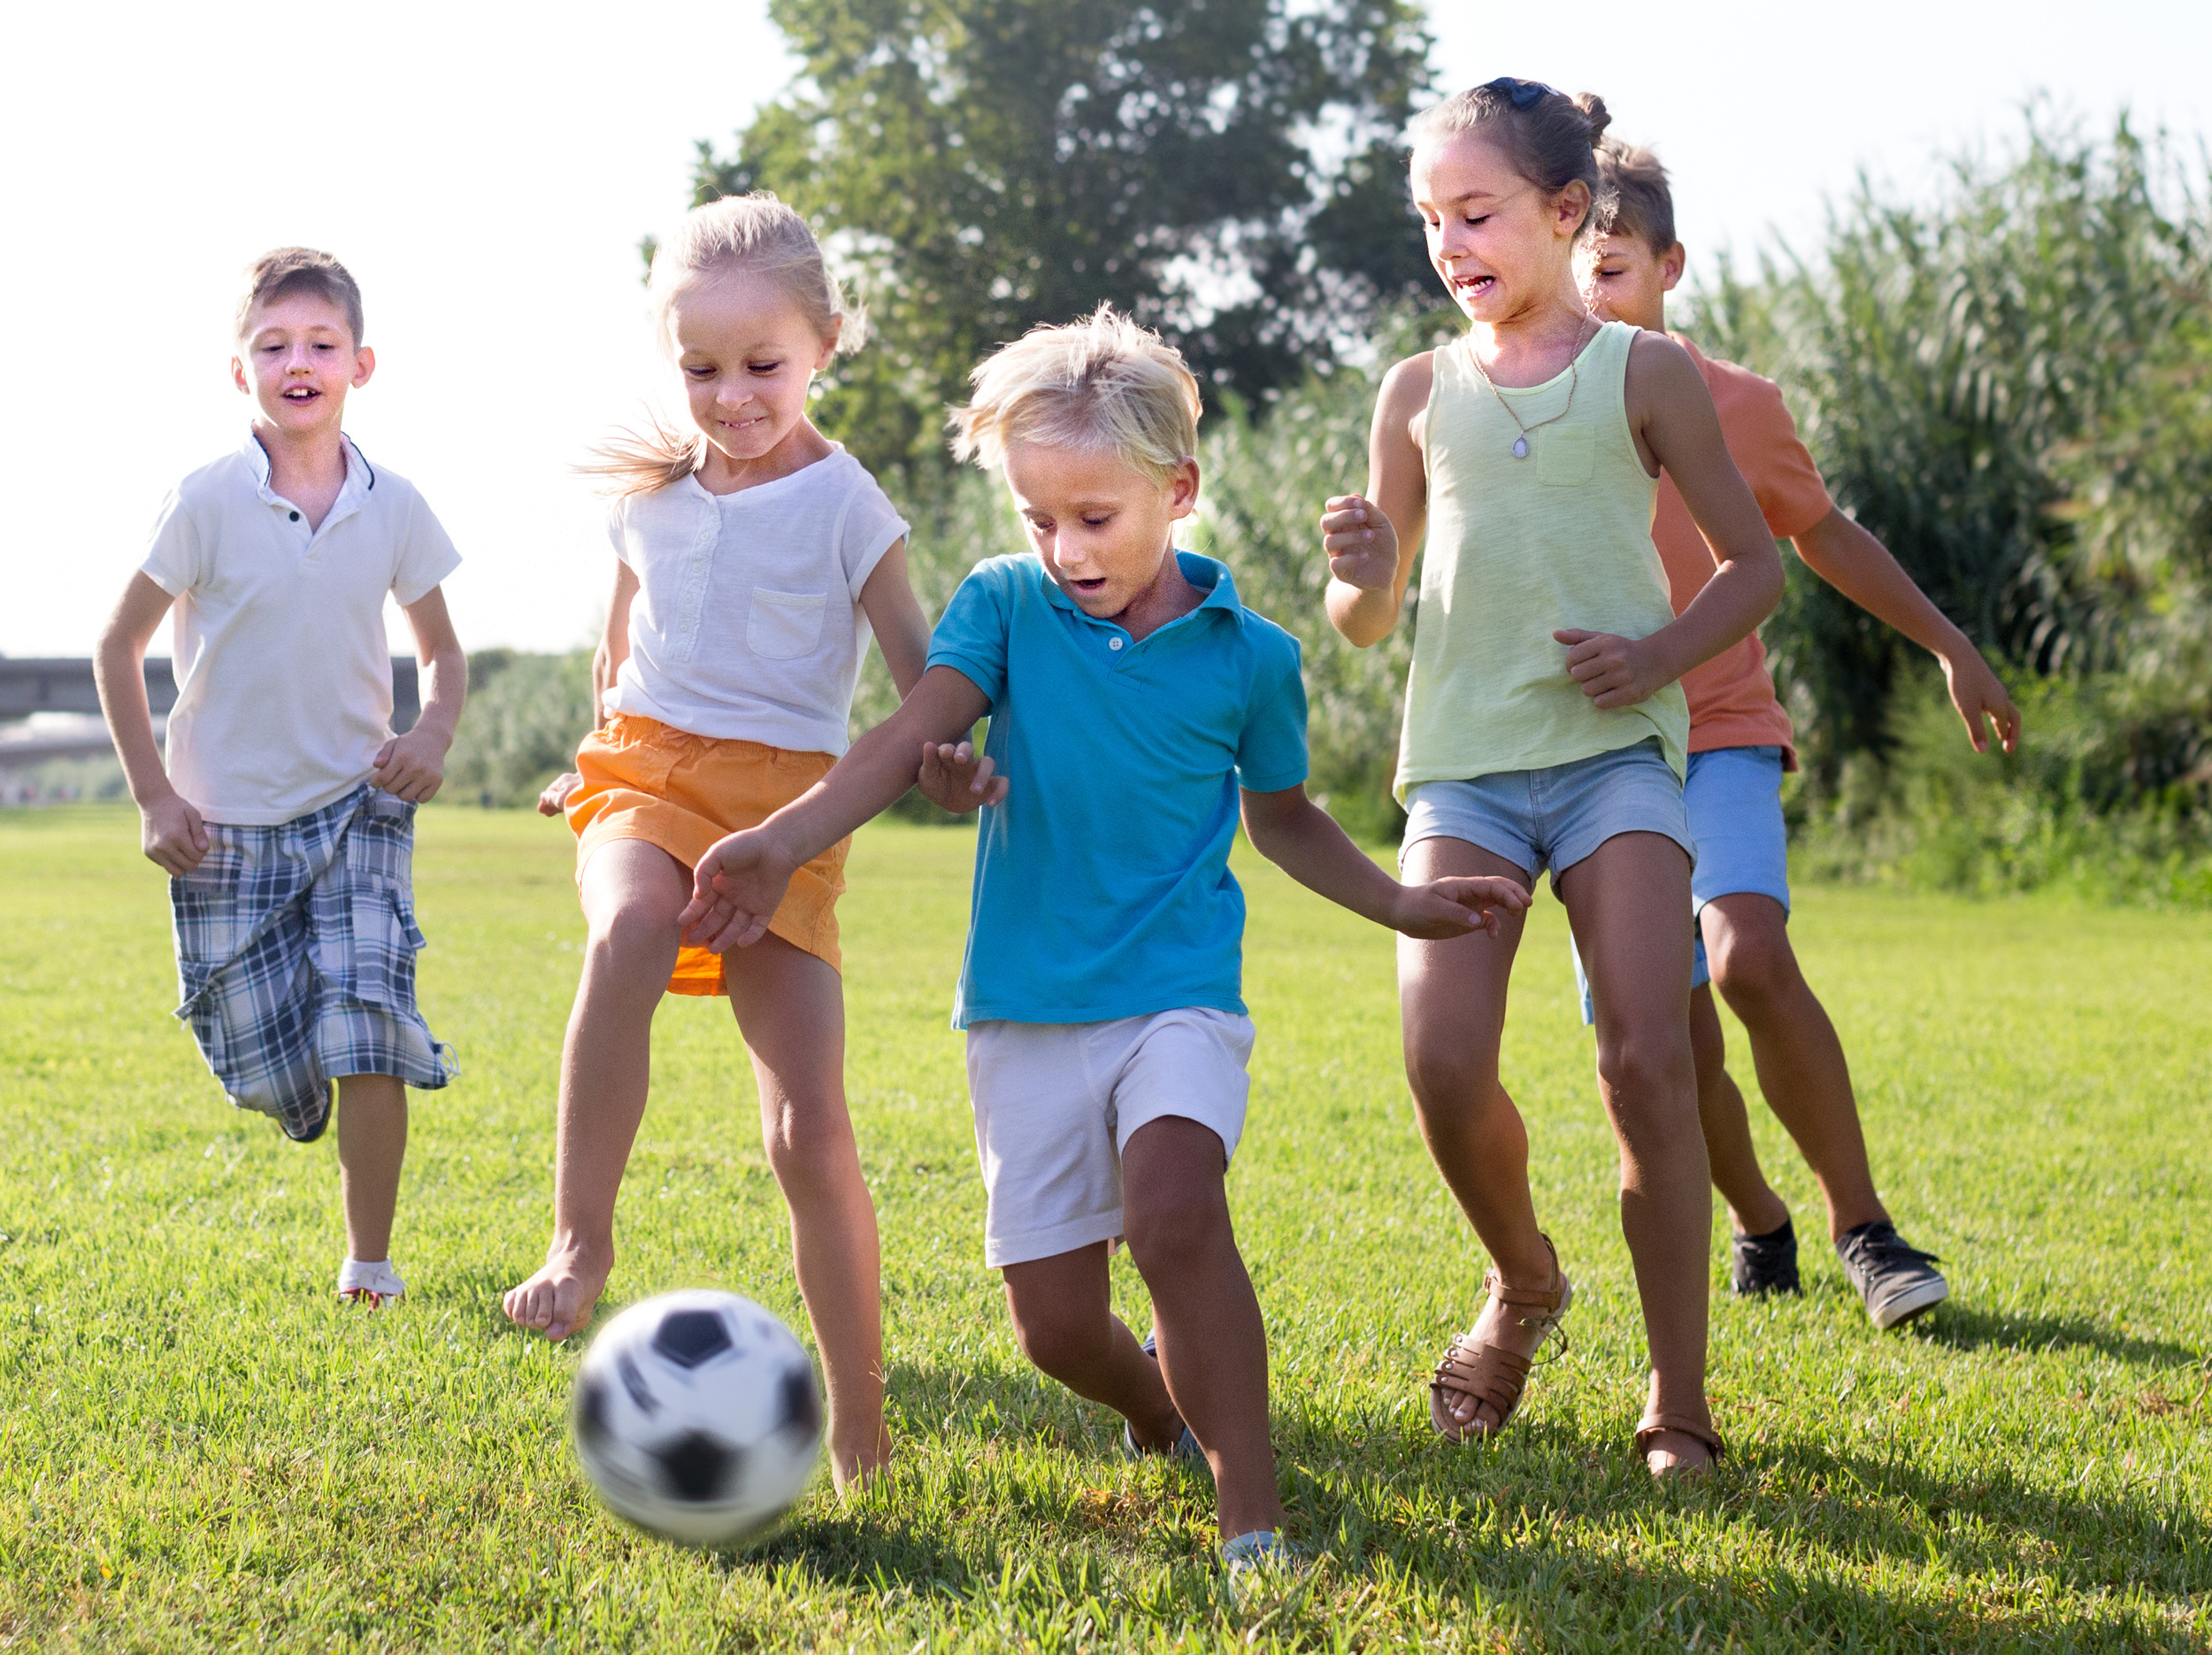 active kids having fun and kicking football outdoors  on summer day